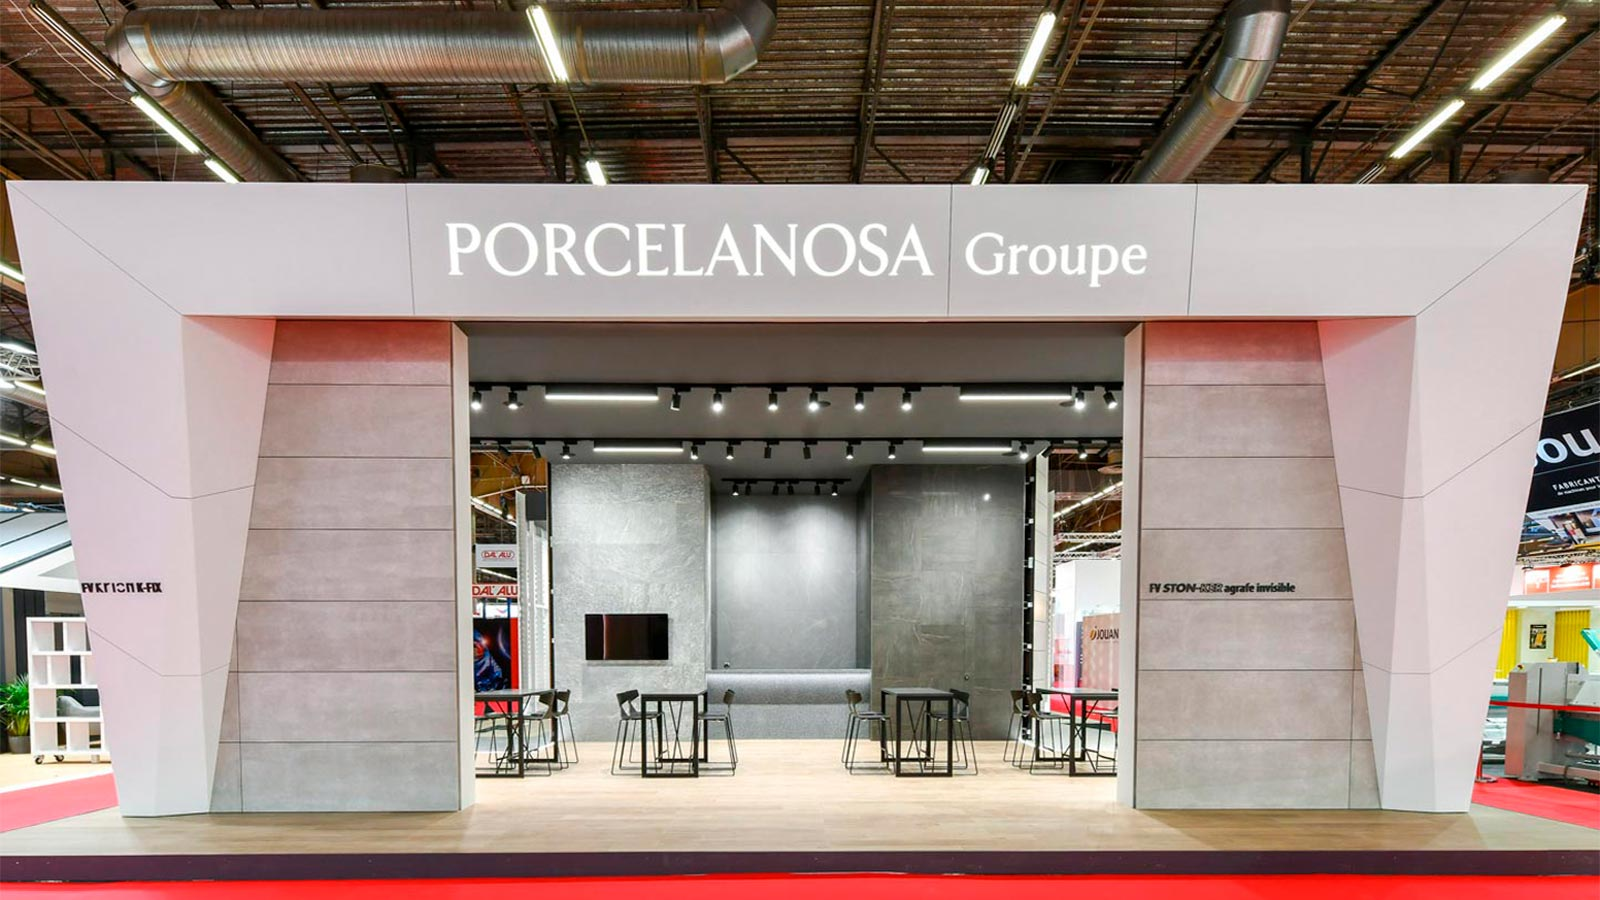 More design with less artifice, the main concept from PORCELANOSA Grupo at the Batimat exhibition fair in Paris